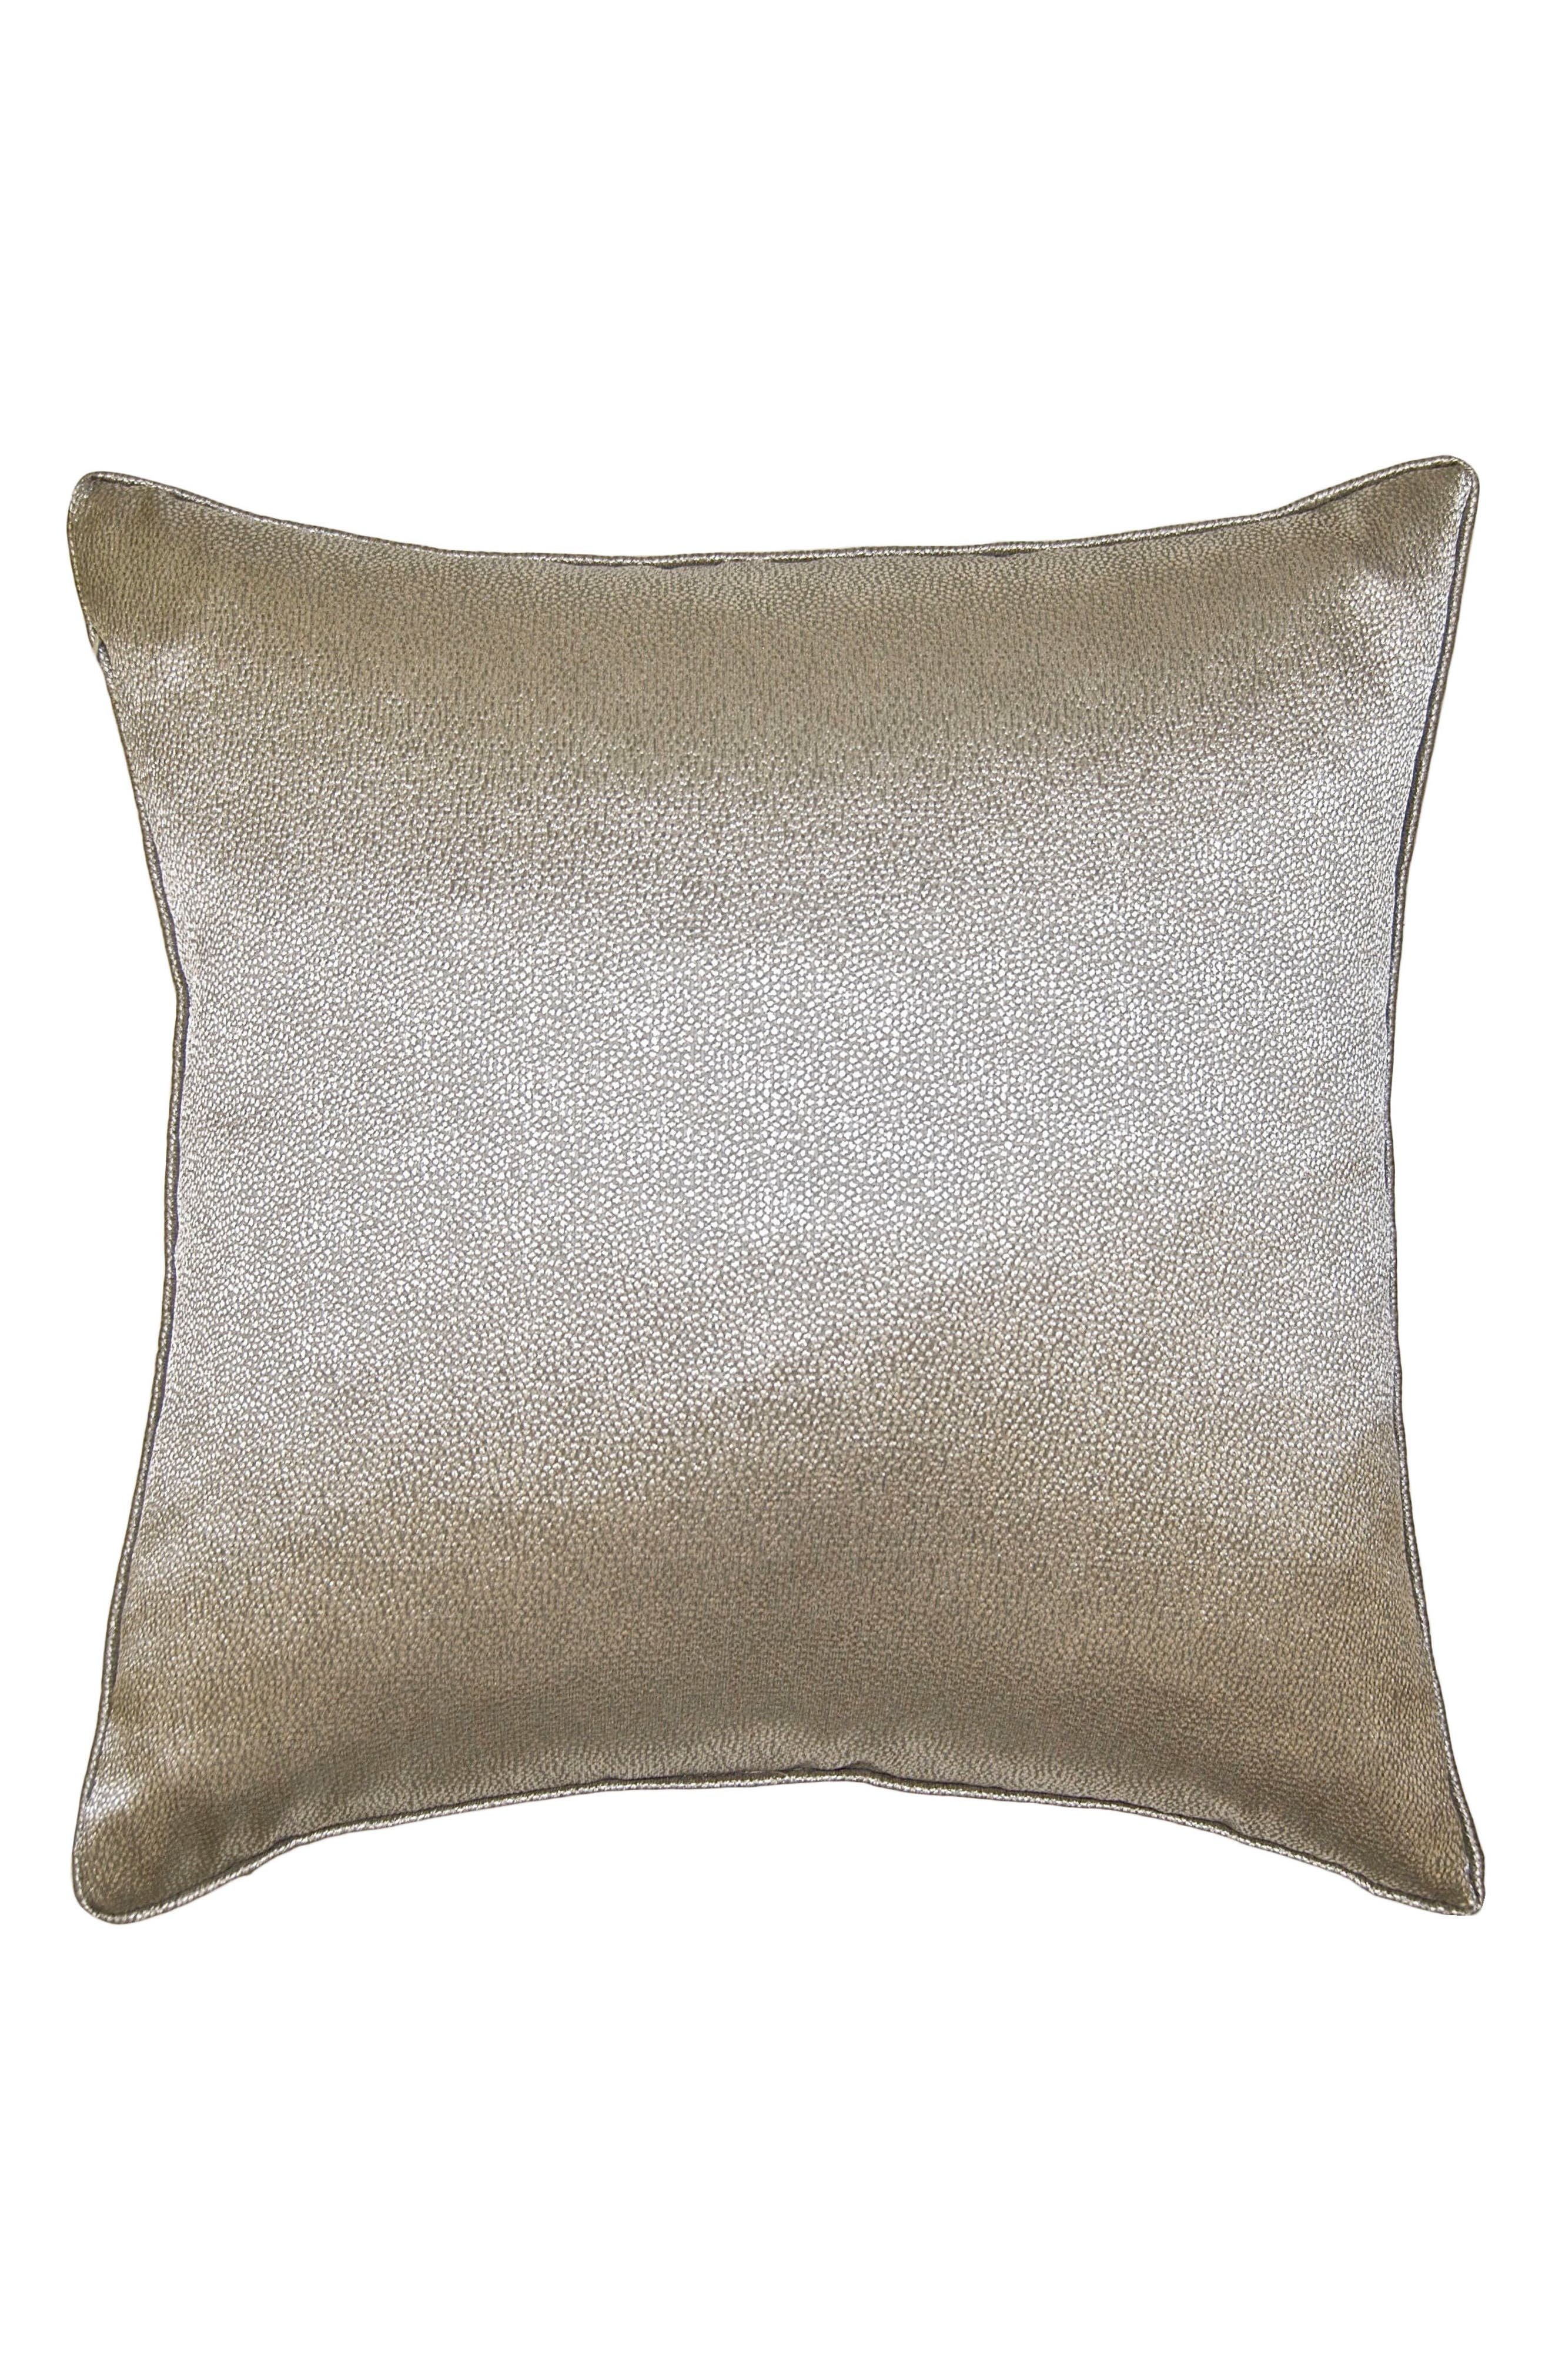 Stars Accent Pillow,                         Main,                         color, Taupe